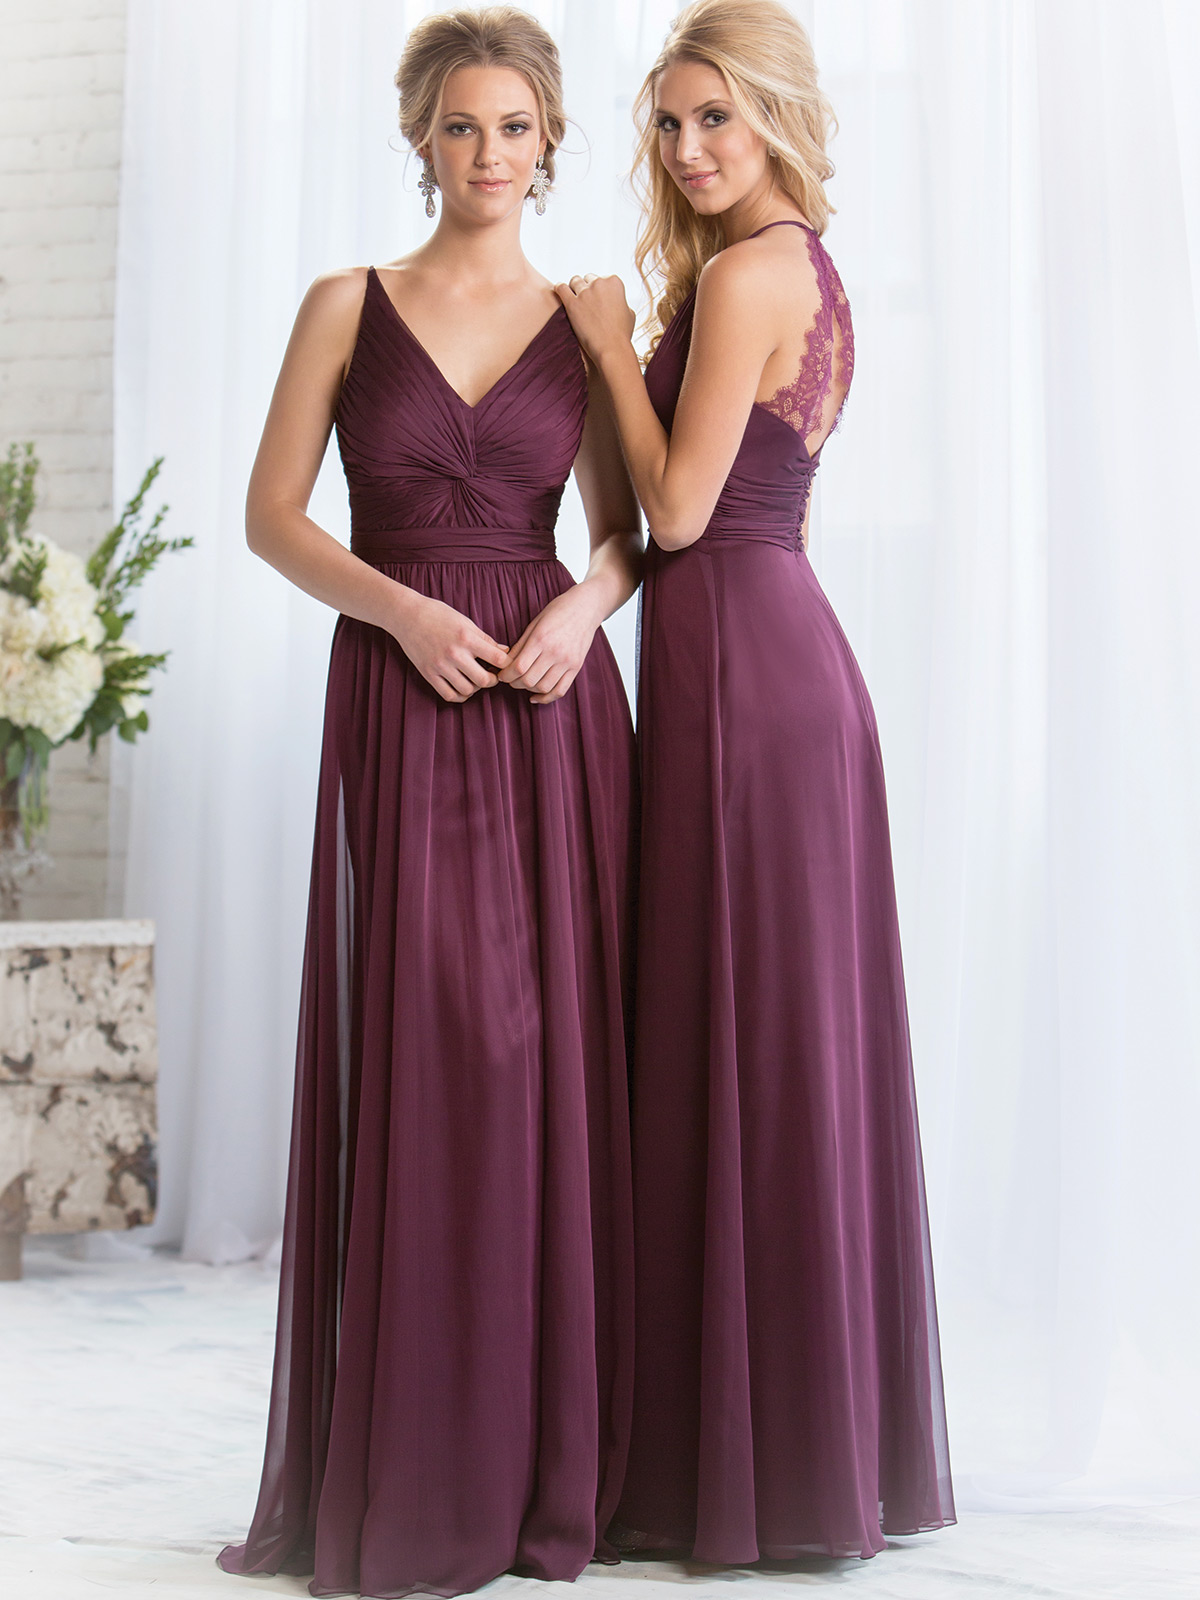 Belsoie bridesmaid dress l164052 dimitradesigns stunning chiffon floor length a line bridesmaid dress belsoie l164052 ombrellifo Images